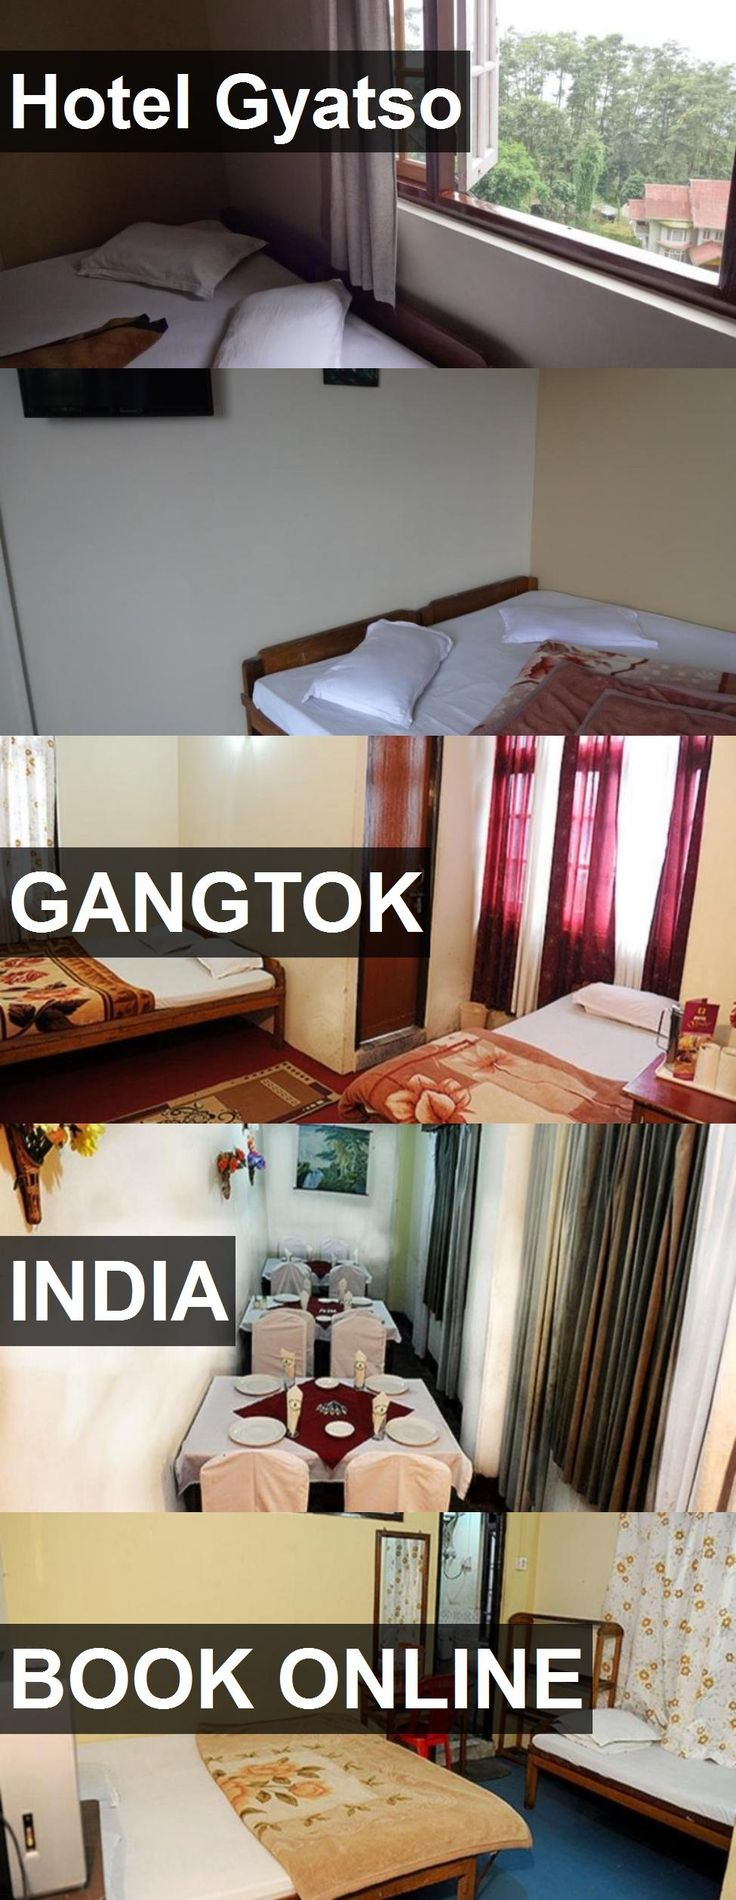 Hotel Gyatso in Gangtok, India. For more information, photos, reviews and best prices please follow the link. #India #Gangtok #travel #vacation #hotel